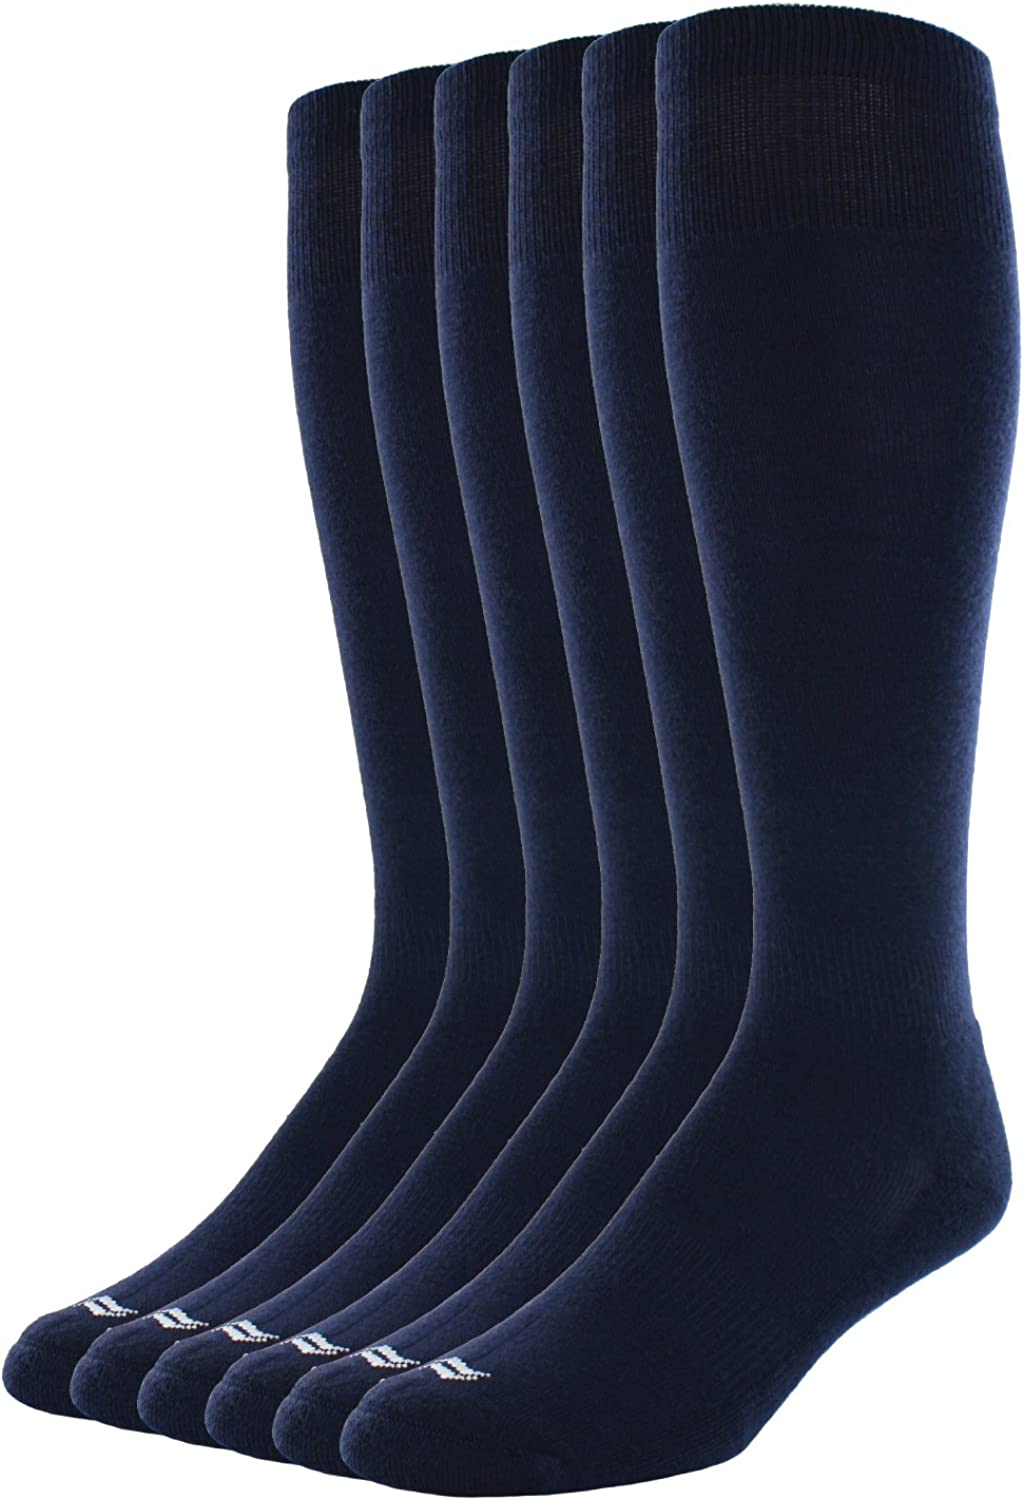 Sof Sole All Sport Over-The-Calf Team Athletic Performance Socks for Men and Youth (6 Pairs), Child 13-Youth 4, Navy : Sports & Outdoors